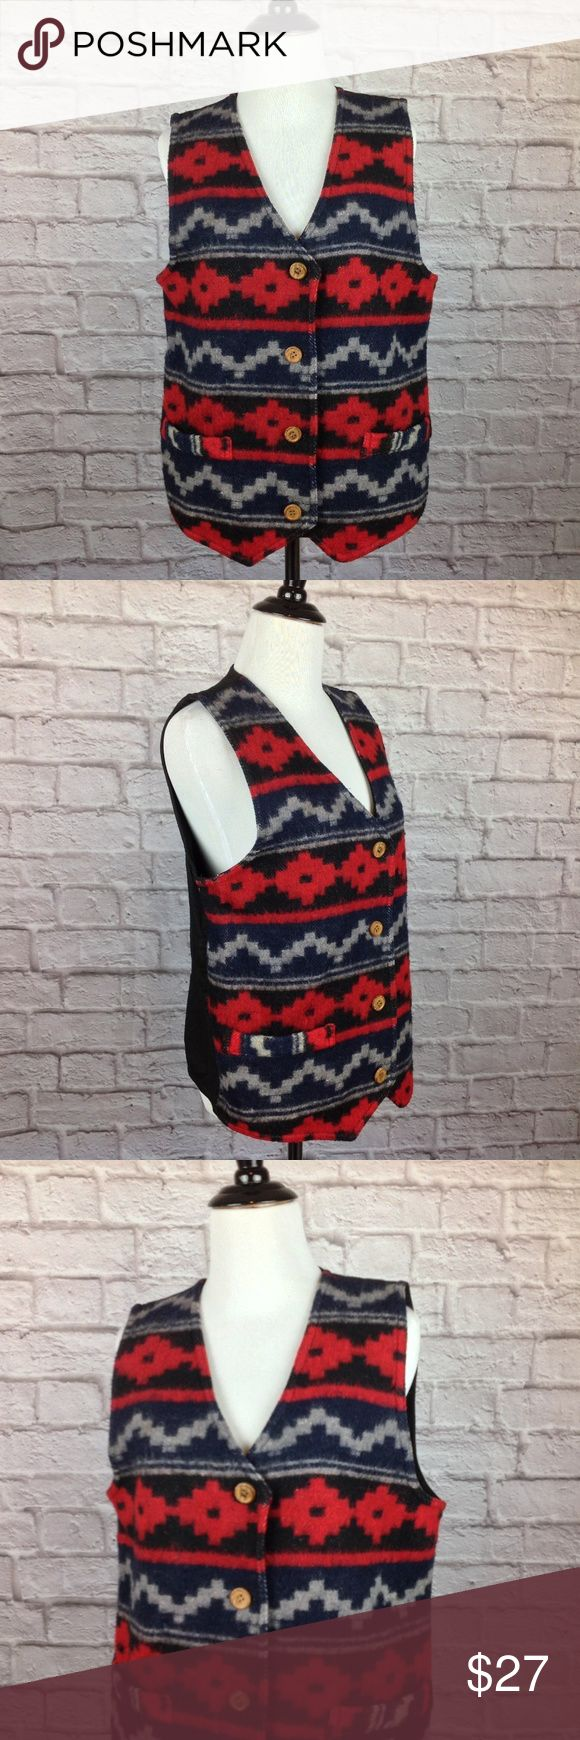 Urban Oasis Vest Small Southwestern Wool Cotton Great Condition;  Urban Oasis Vest Womens Small Southwestern Wool Cotton Button Red Blue Black; Back Adjuster belt; 21 inch length at sides; 23.5 inch length down the front; 19.5 inch across bust 44/48/3/5 Wool/Cotton/Polyester/Other  A04-09 Urban Oasis Jackets & Coats Vests